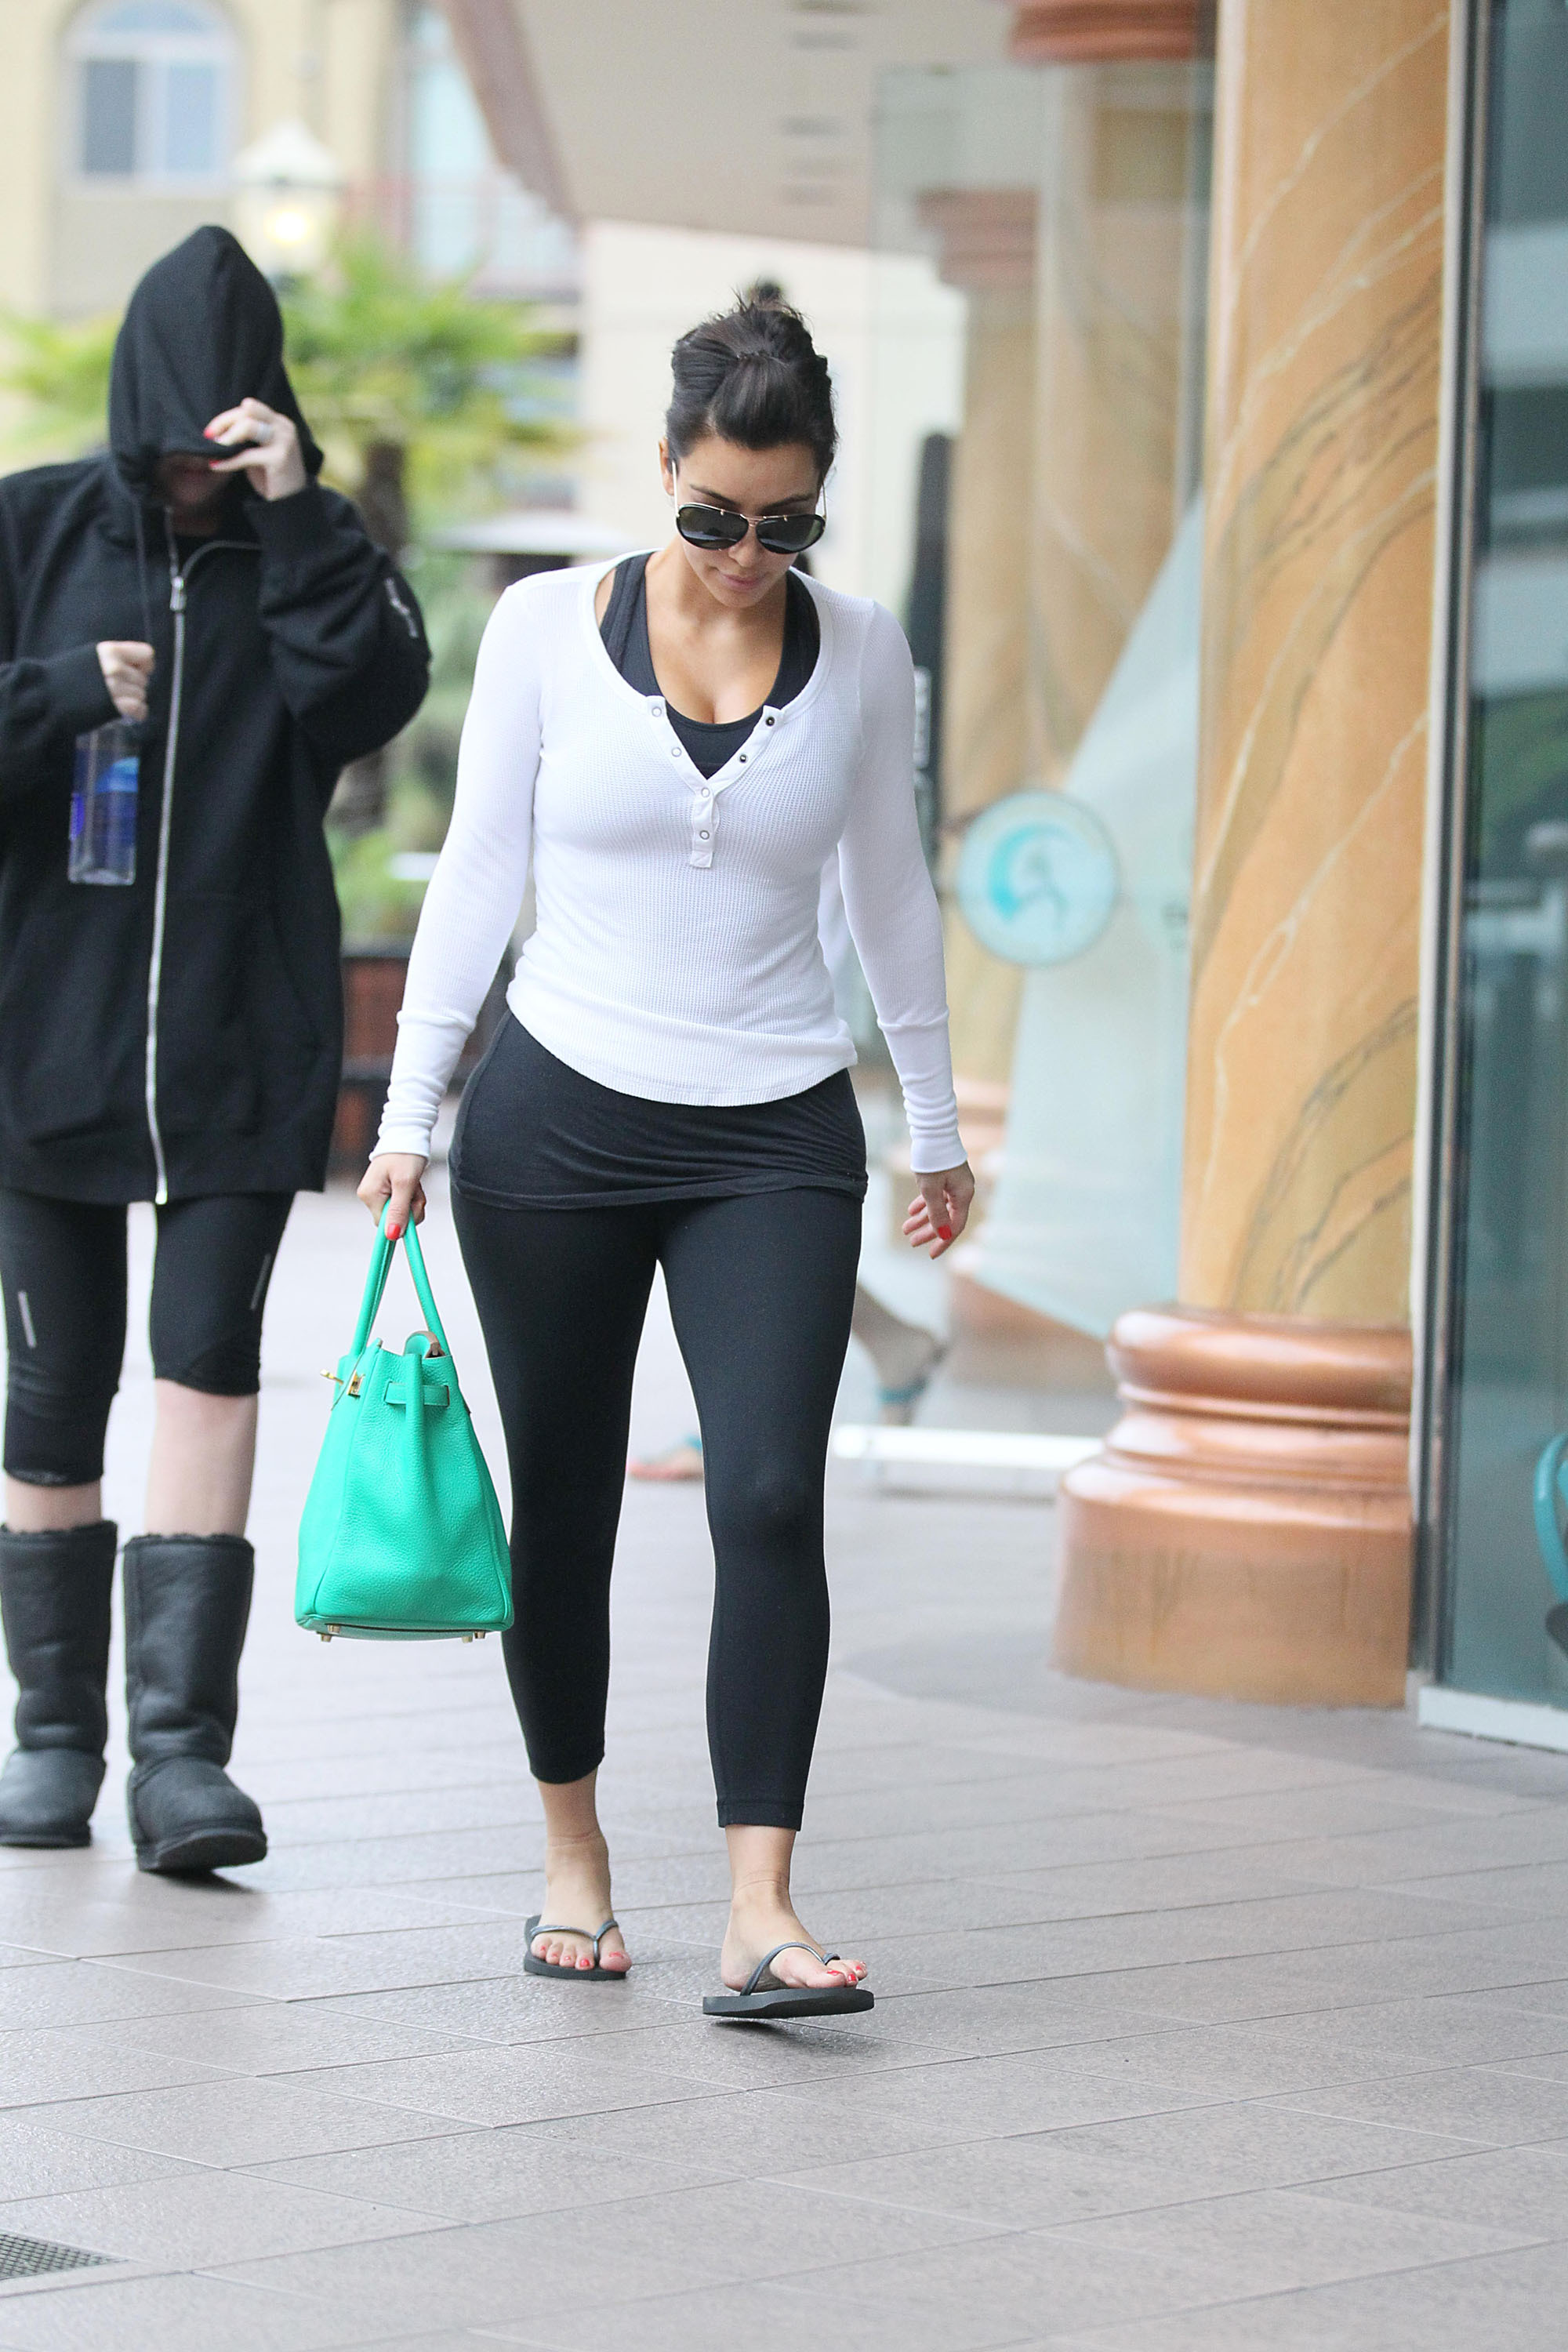 Kim Kardashian seen leaving her Pilates class in Encino Los Angeles, California - 04.06.12  Featuring: Kim Kardashian Where: United States When: 04 Jun 2012 Credit: WENN